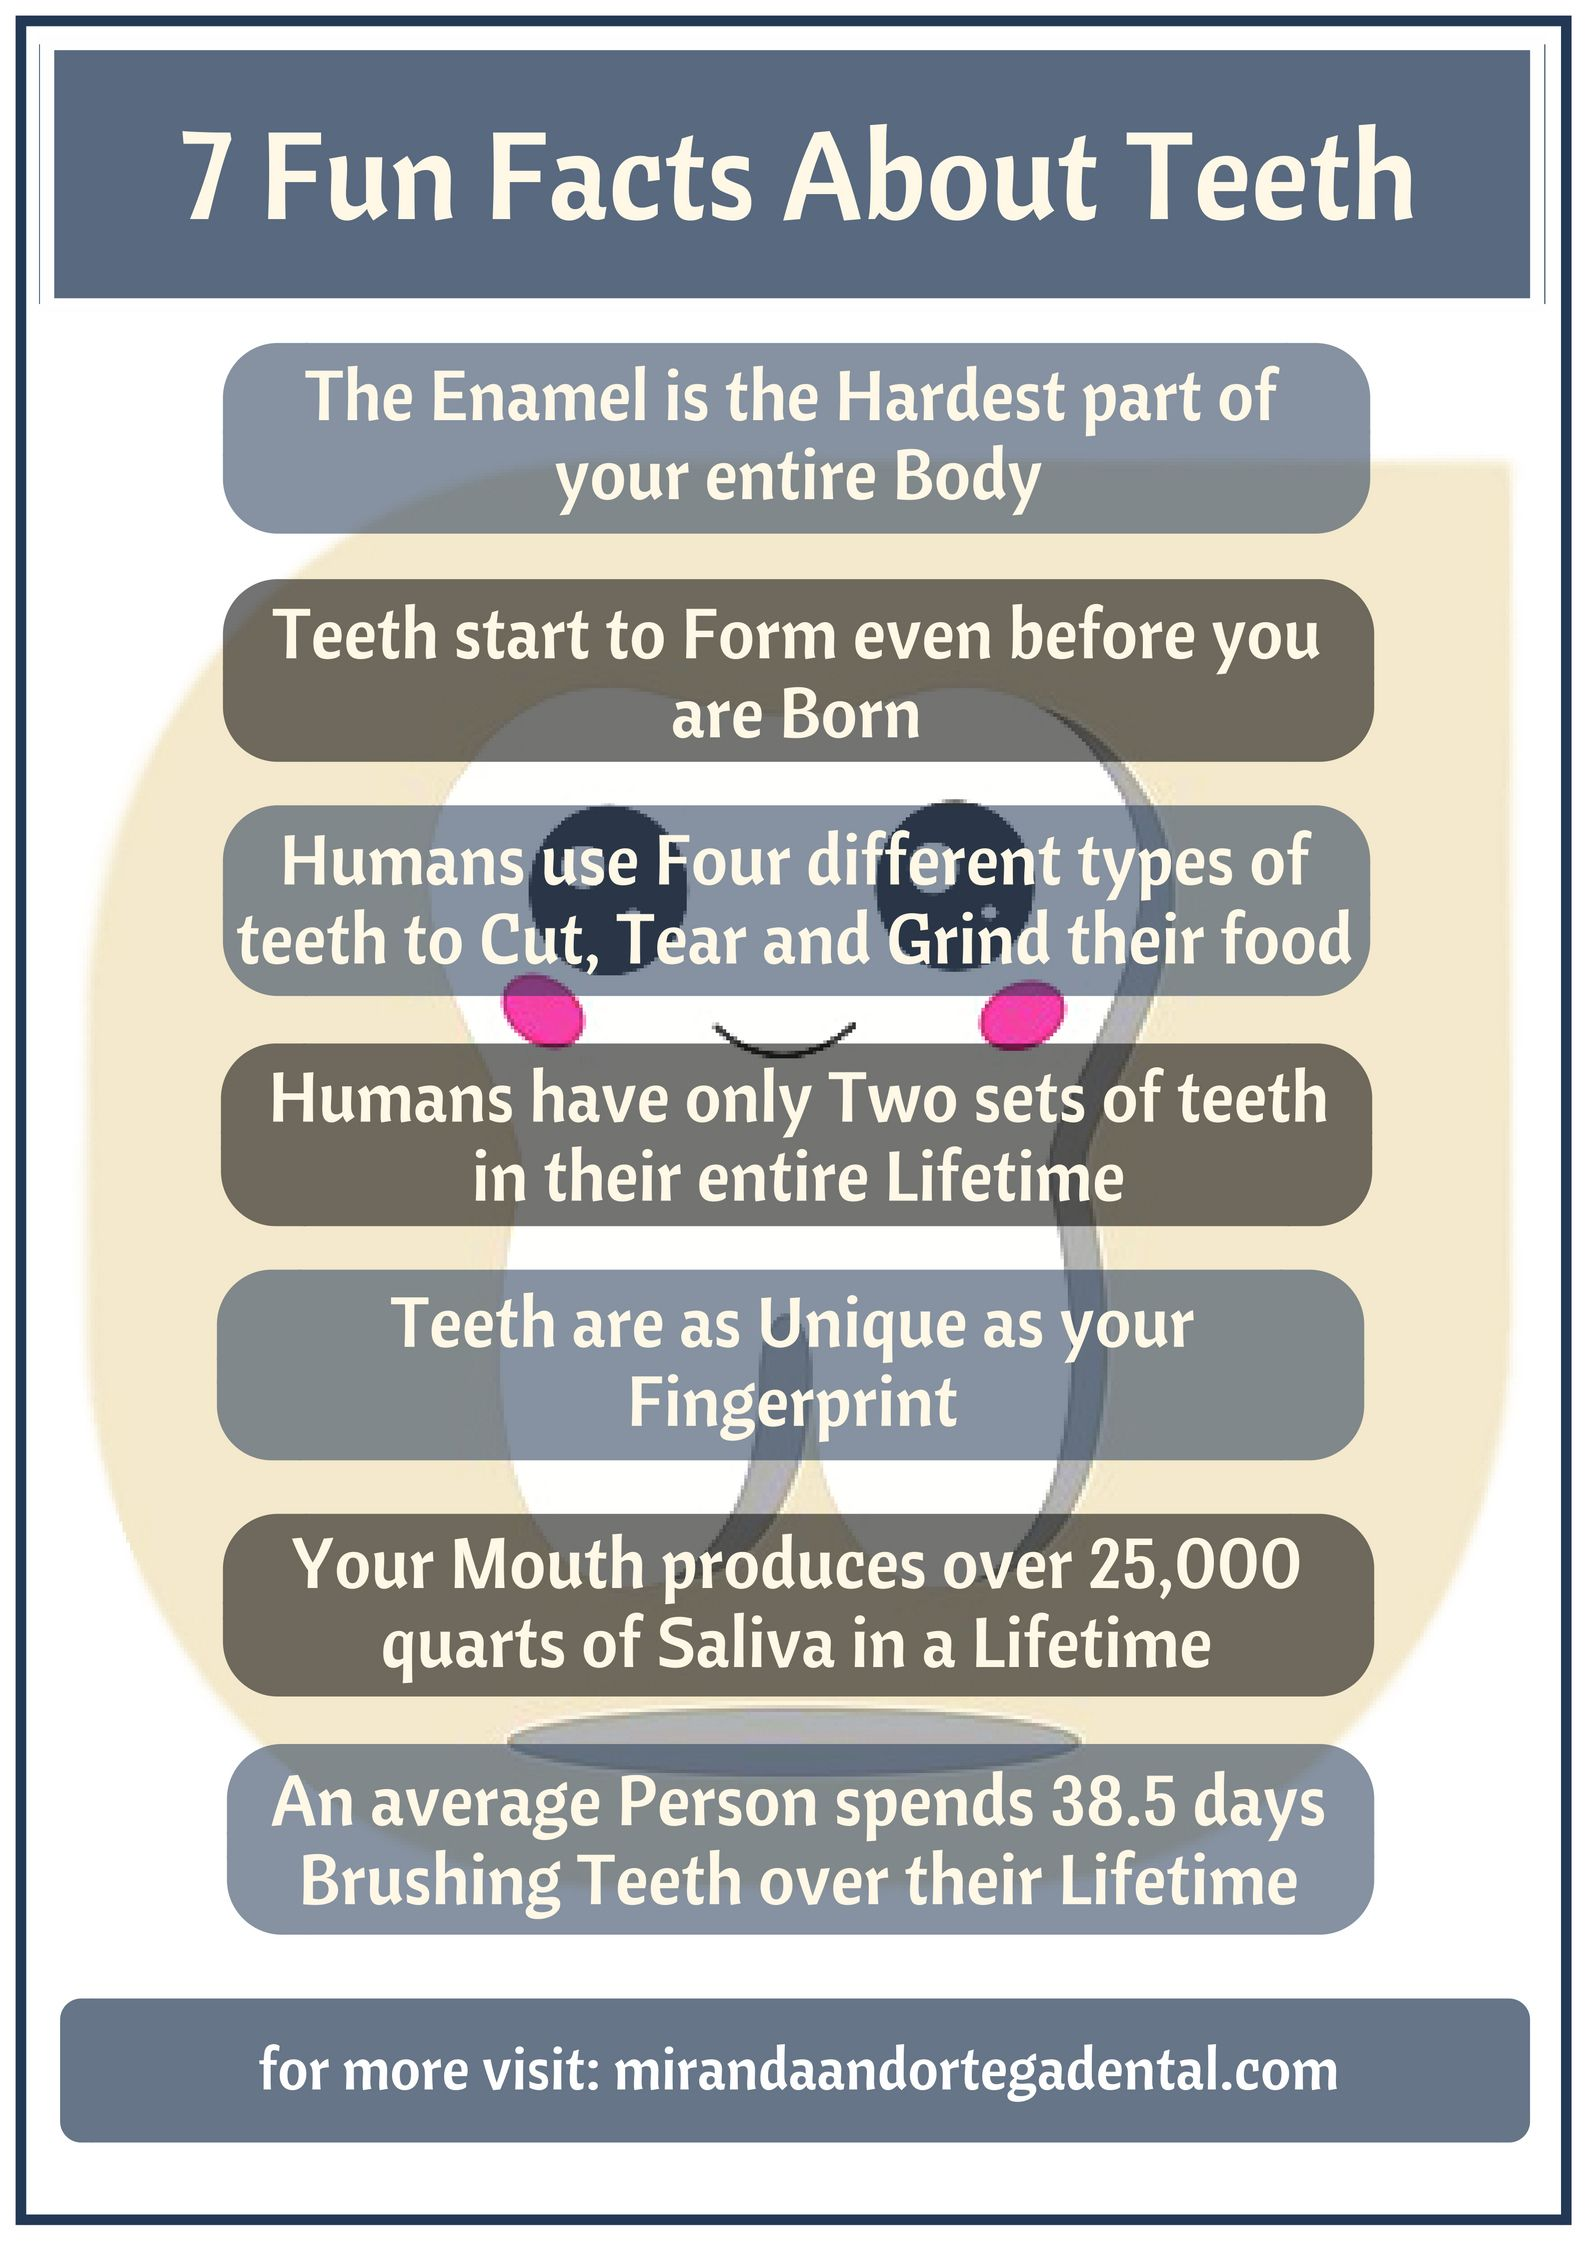 Here is a list of some fun facts on our teeth that we